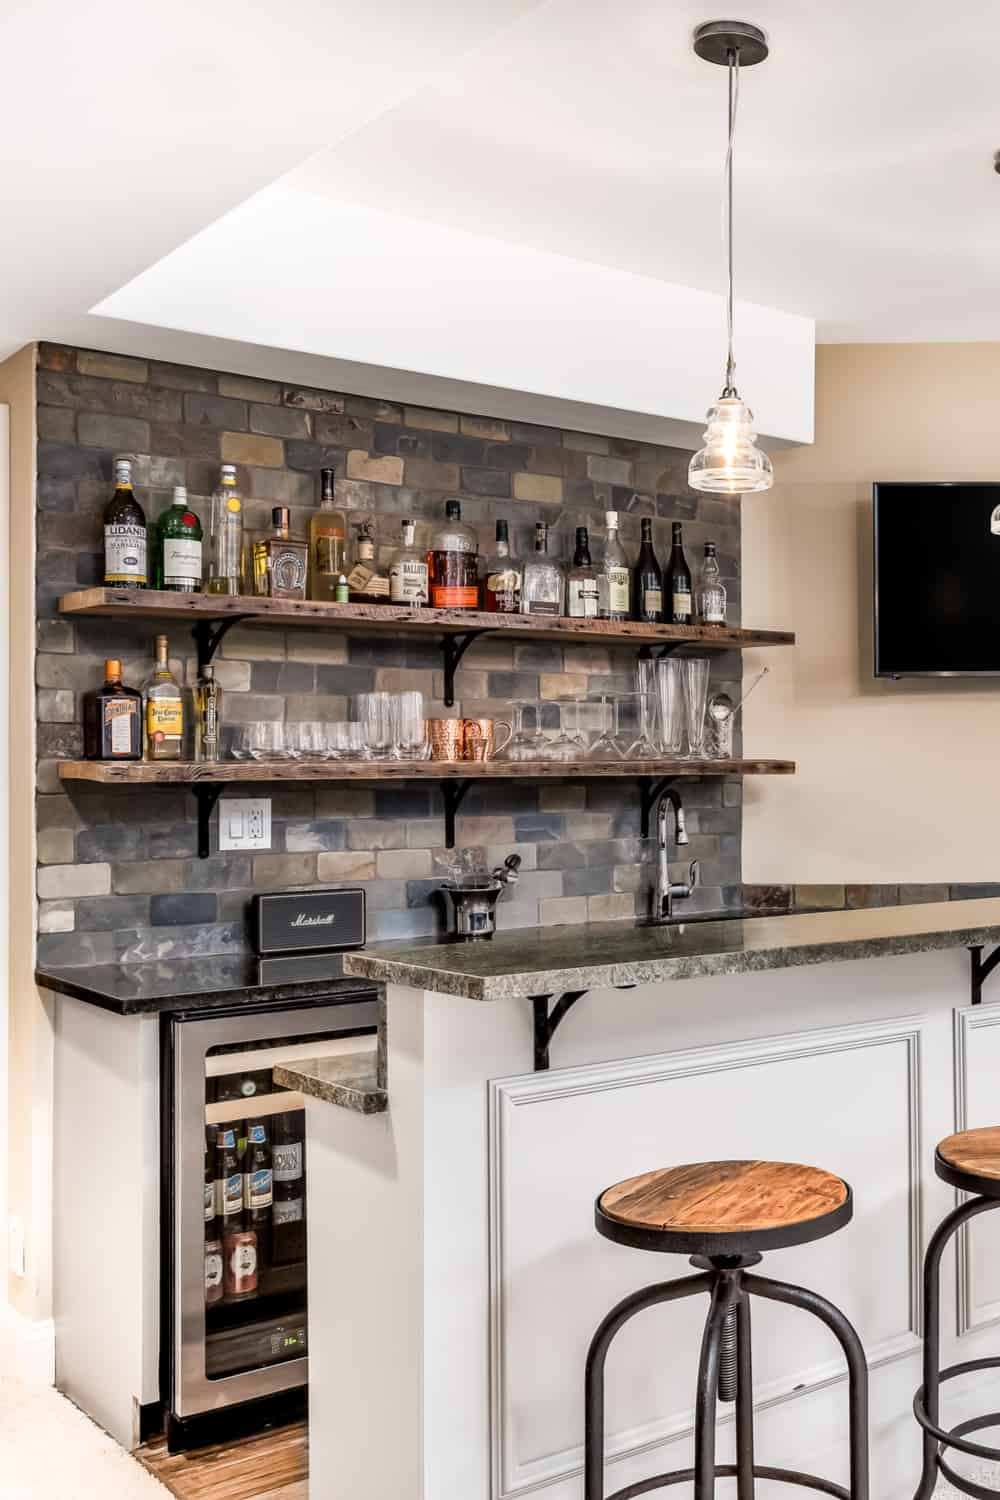 17 Homemade Basement Bar Plans You Can Build Easily